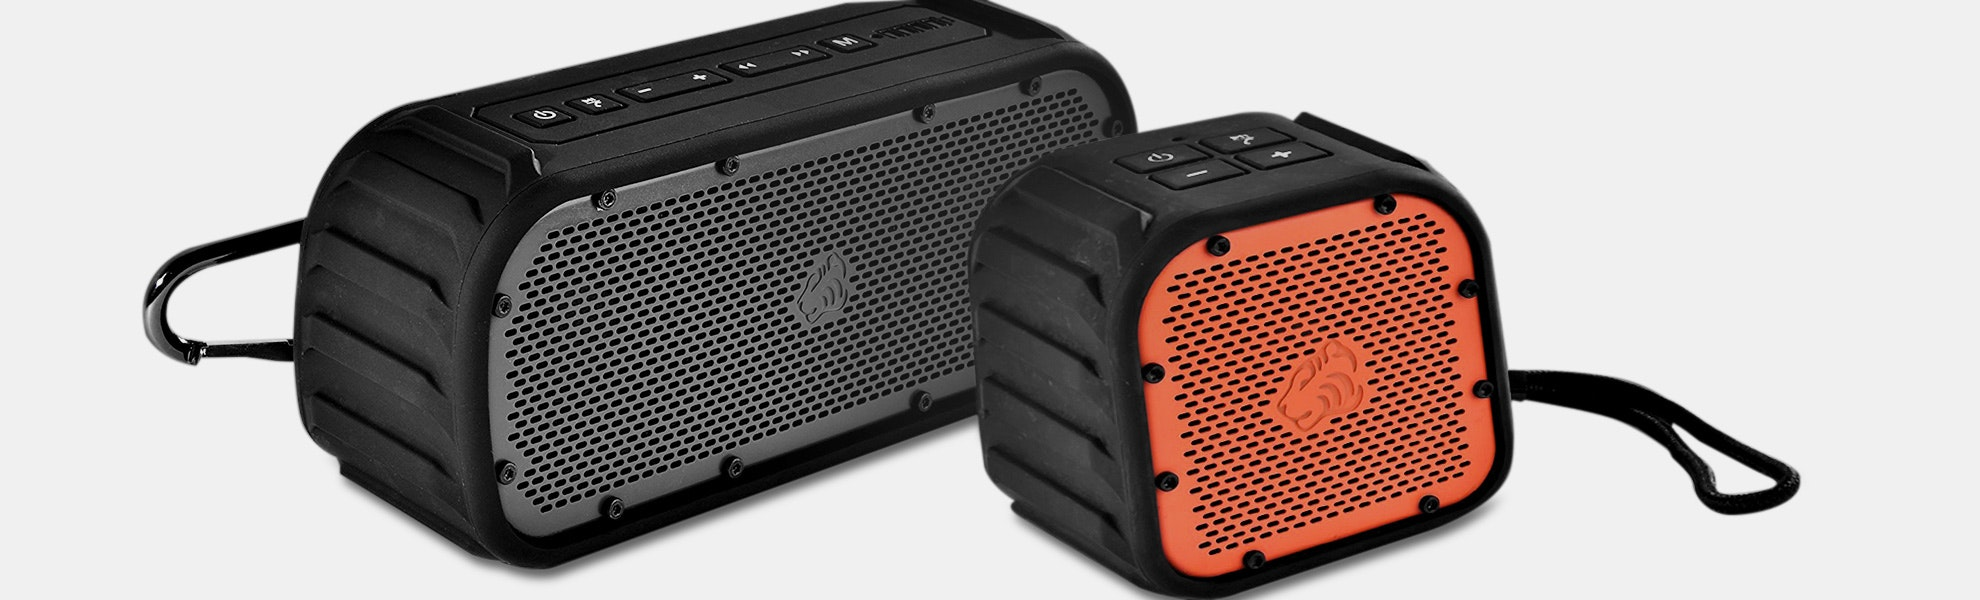 Corbett Waterproof Bluetooth Speakers